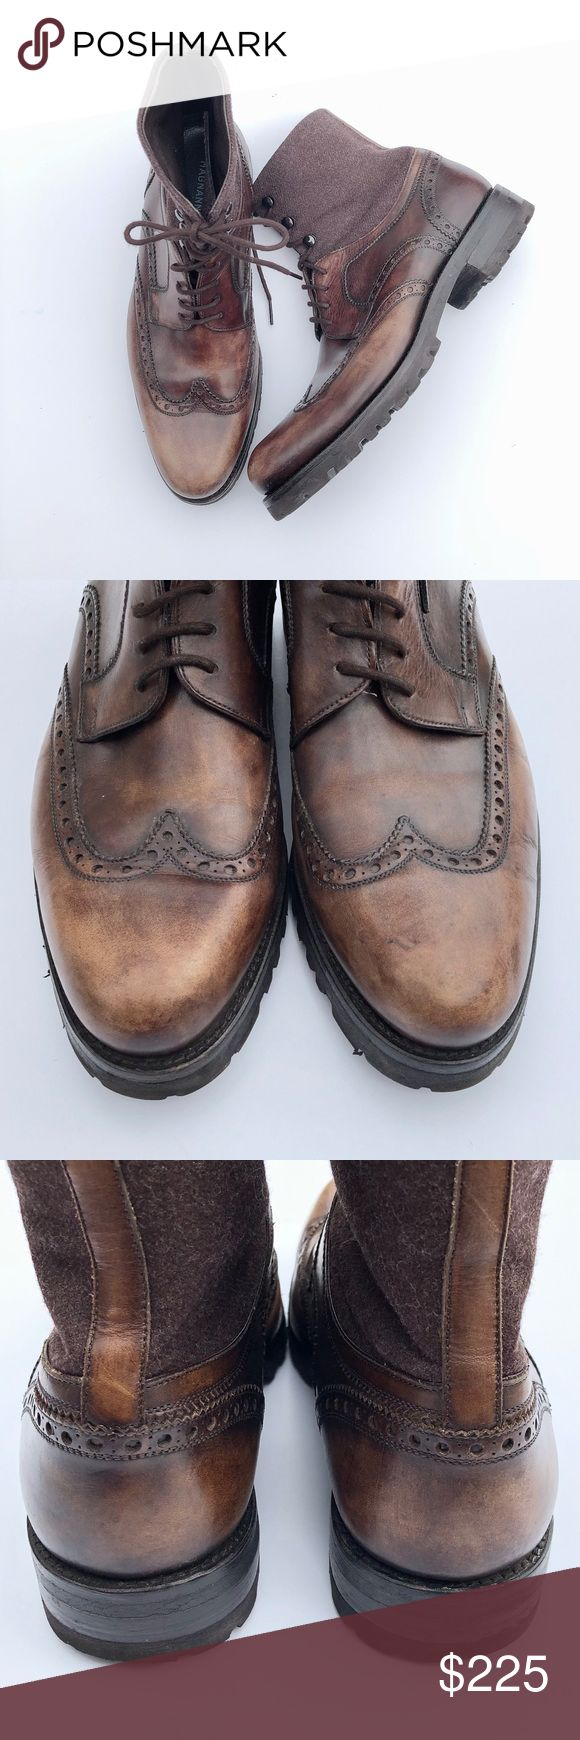 Magnanni Brown Leather Wingtip Ankle Boots 8 Excellent used condition leather an...